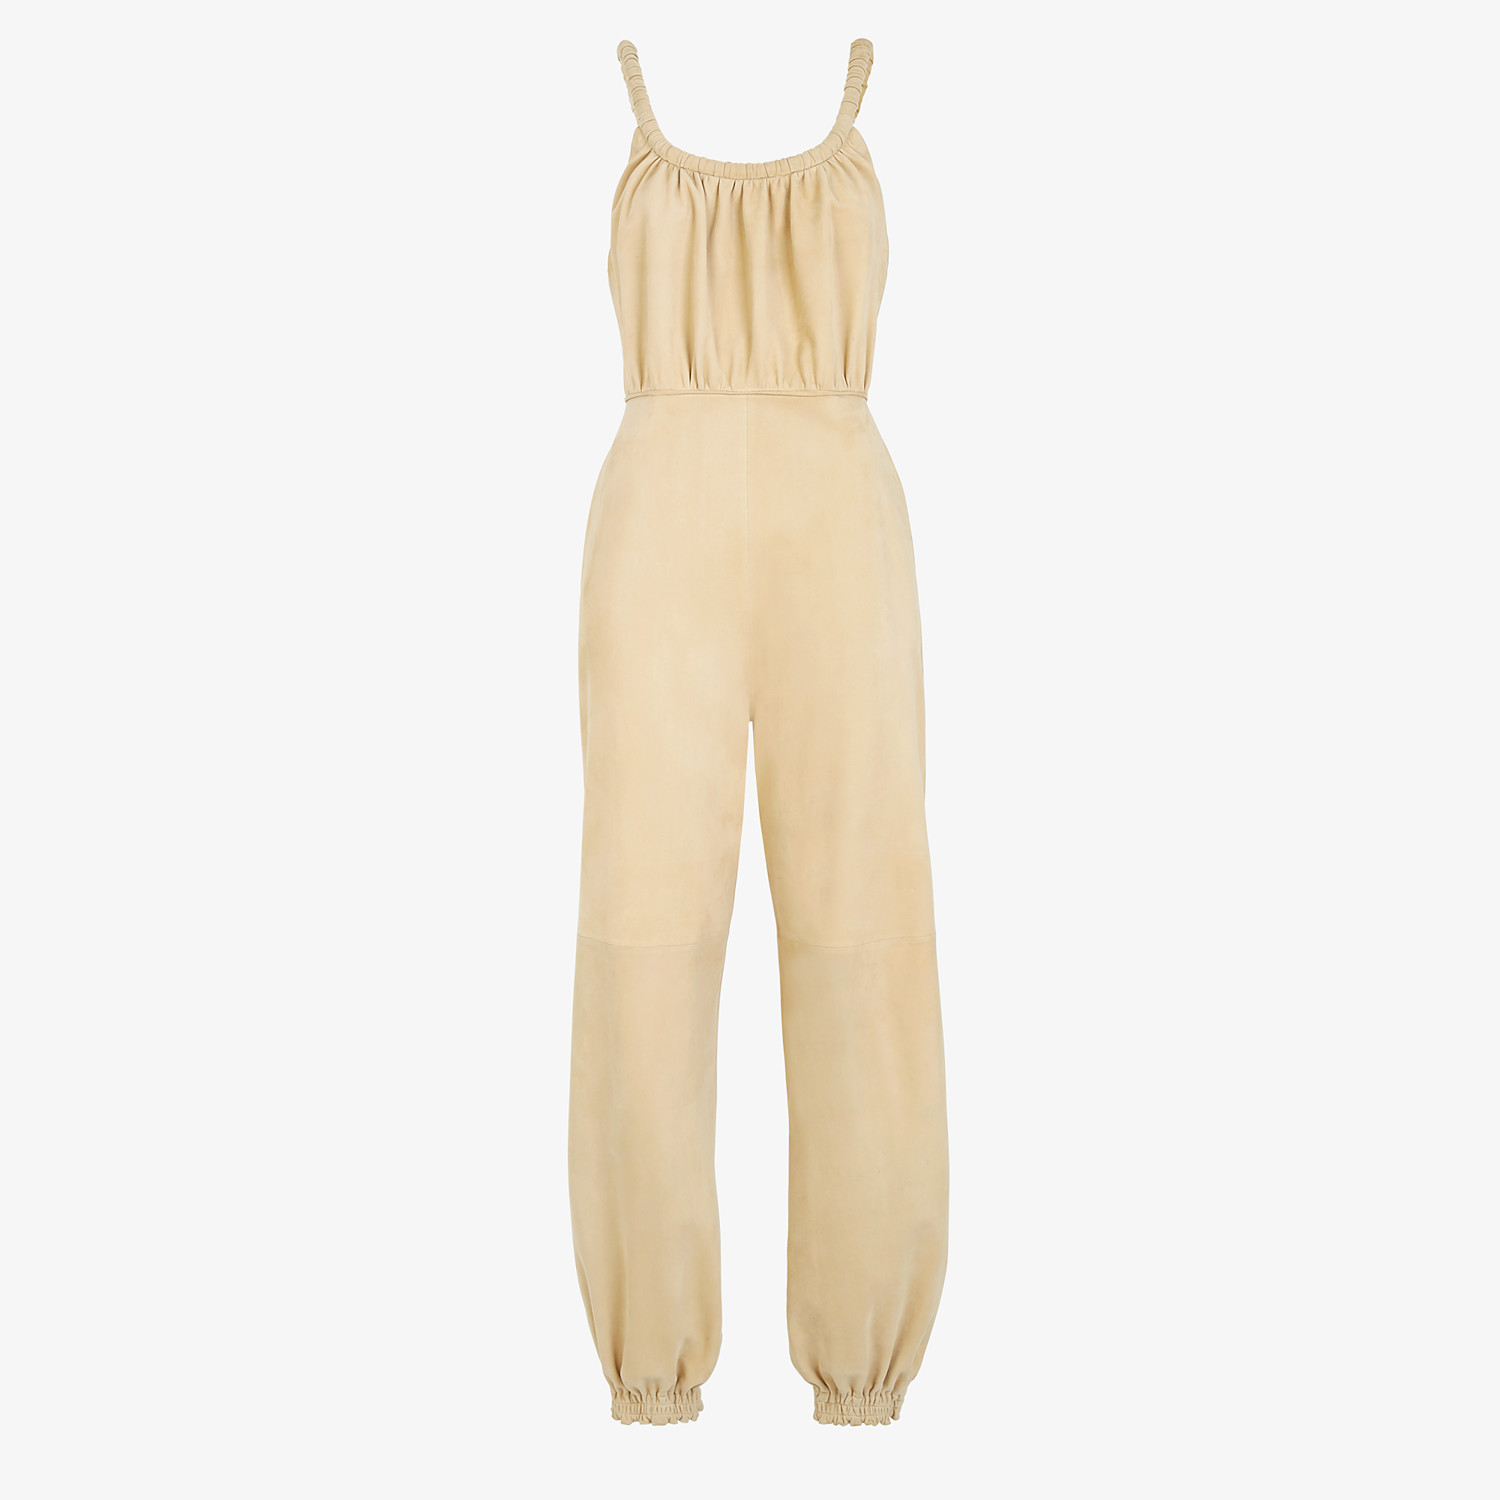 FENDI JUMPSUIT - Beige suede jumpsuit - view 1 detail